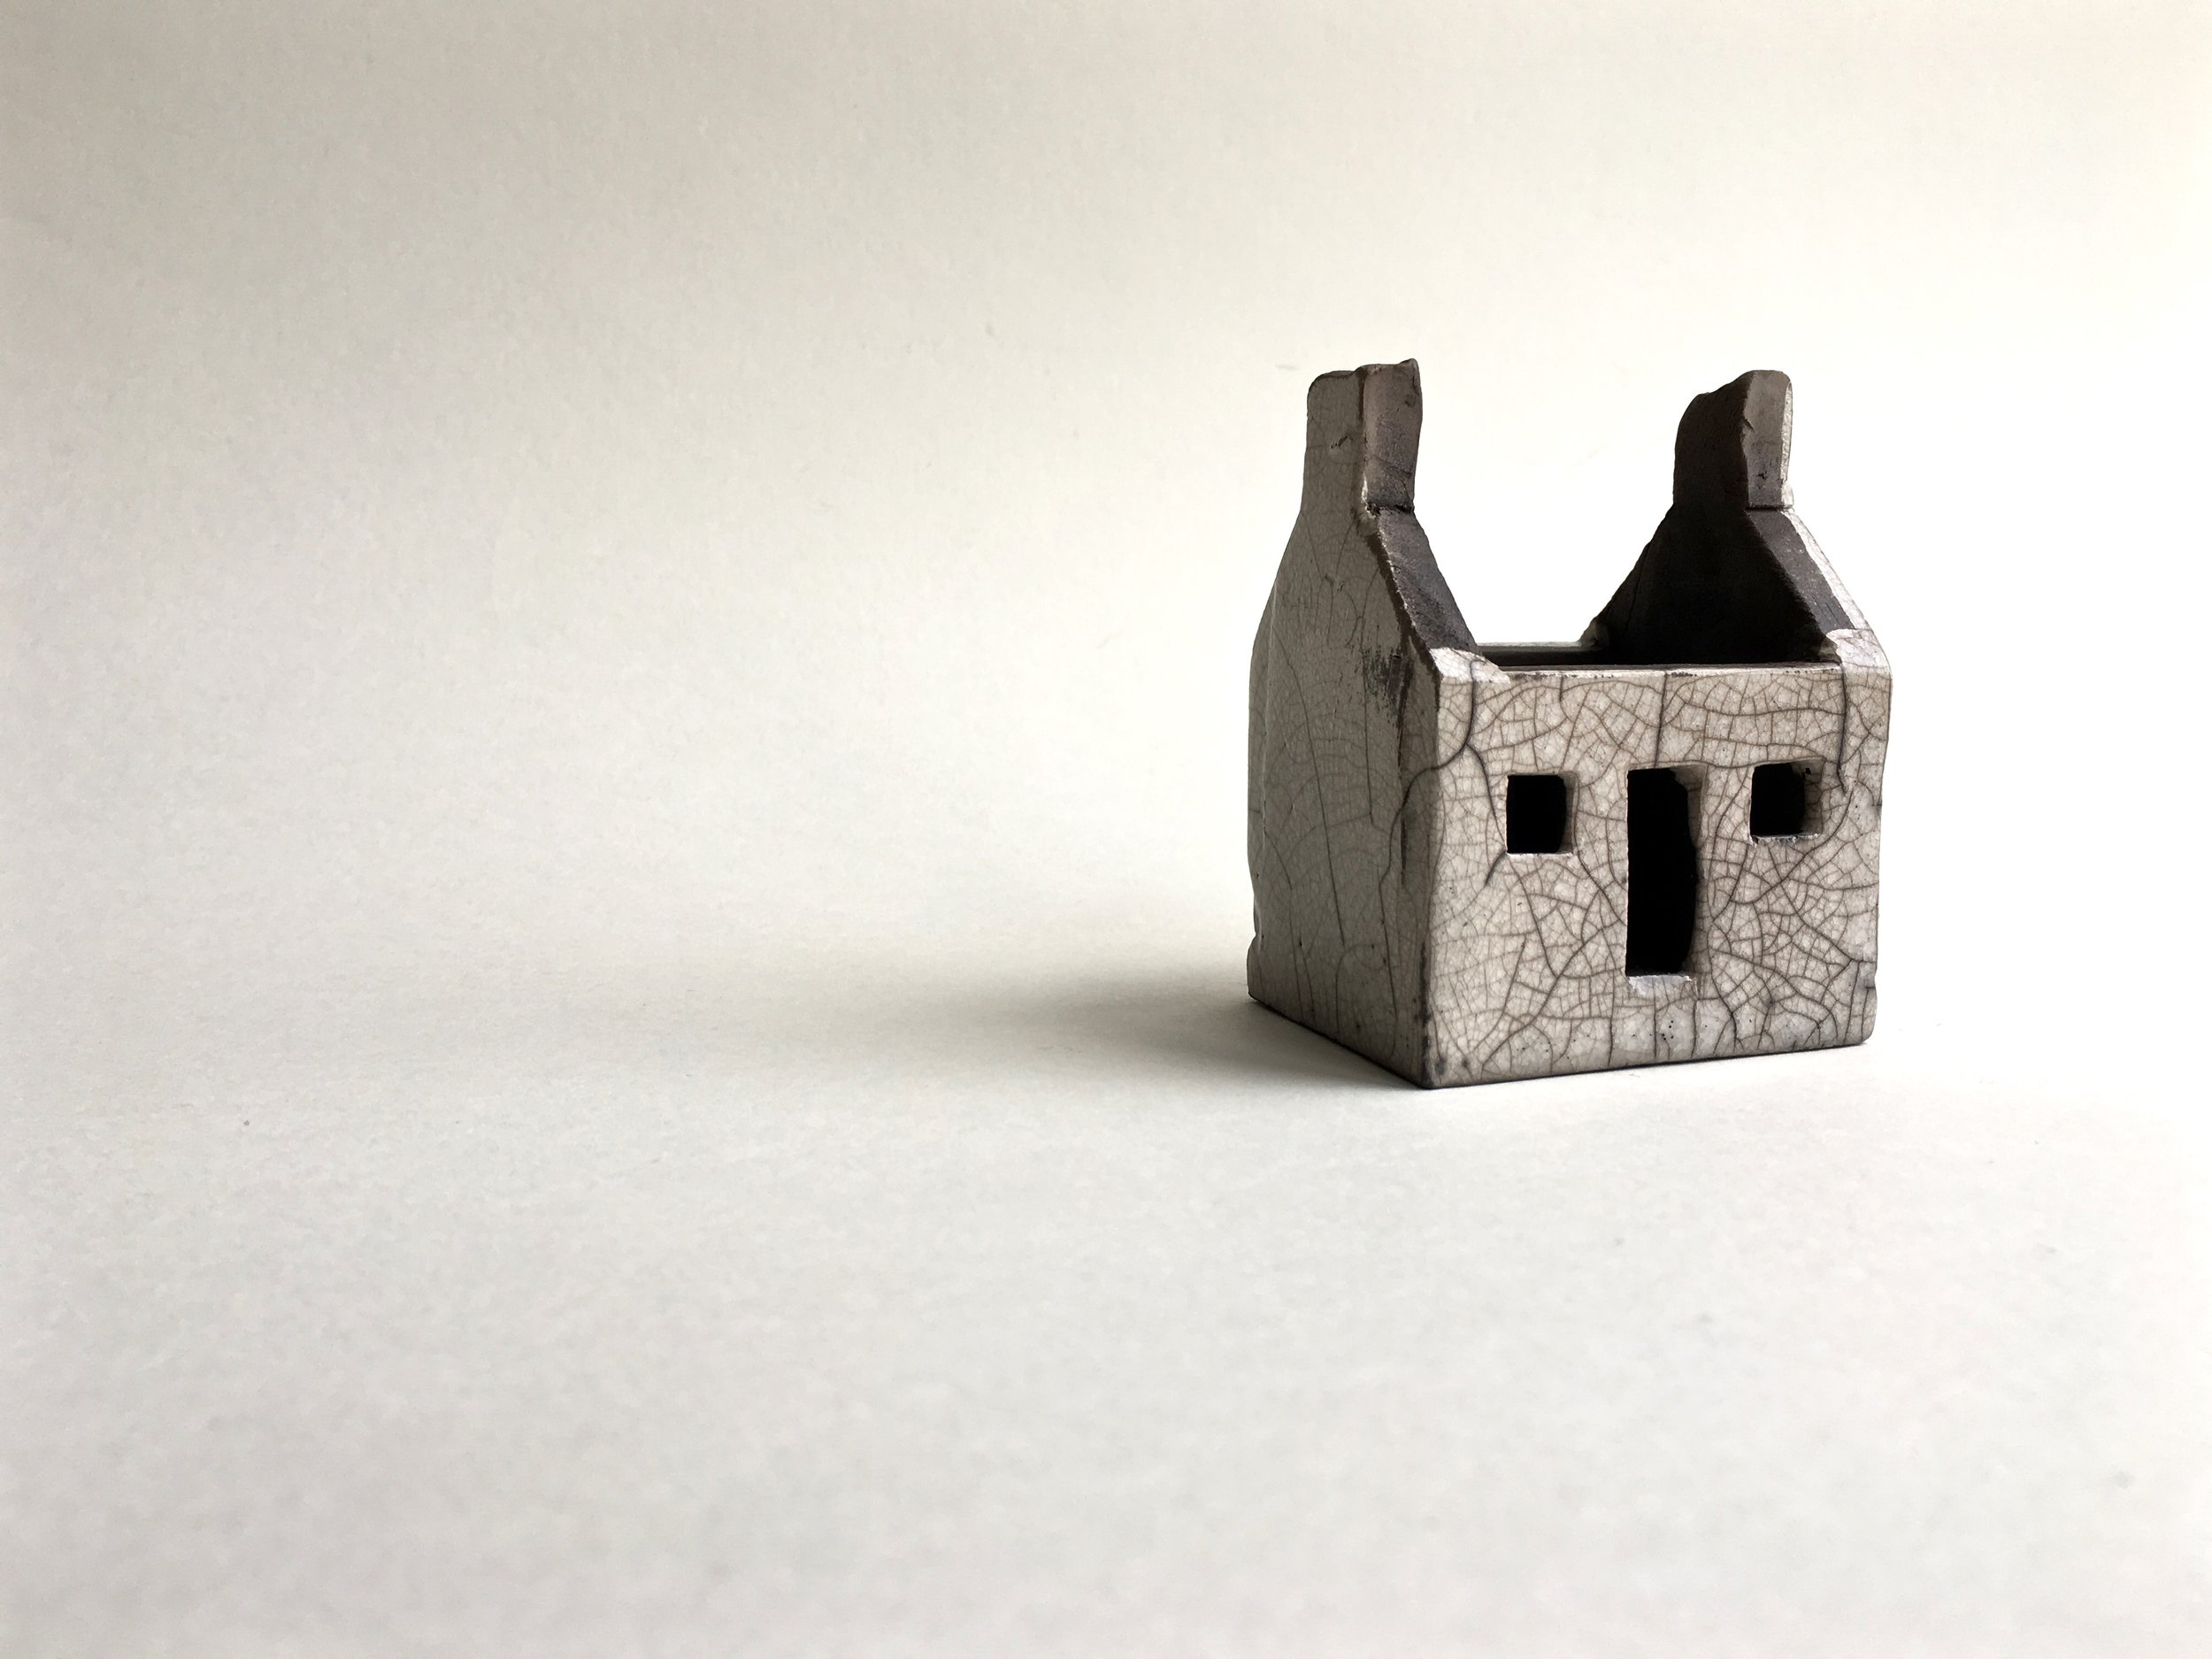 Roofless house, 8x6x5cm £45